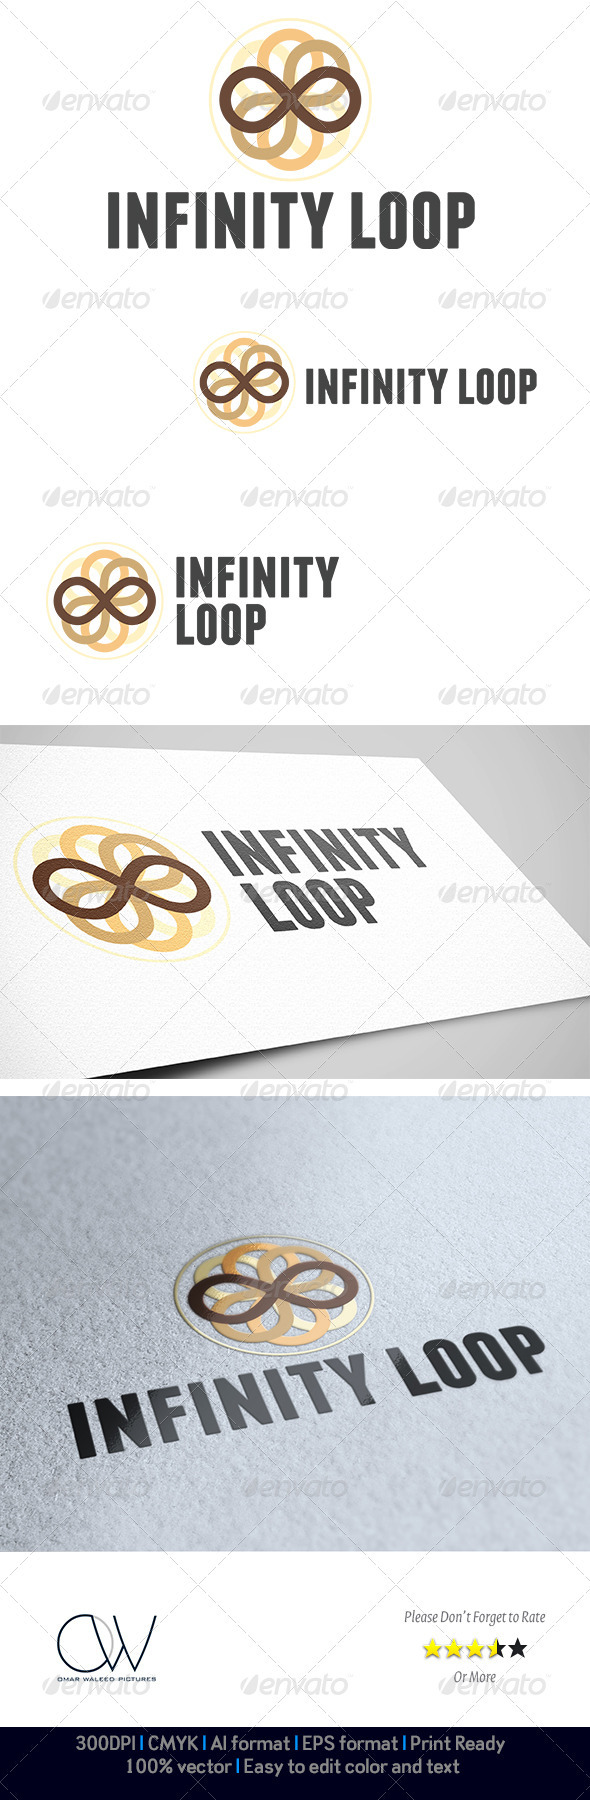 Infinity Loop Logo - Abstract Logo Templates